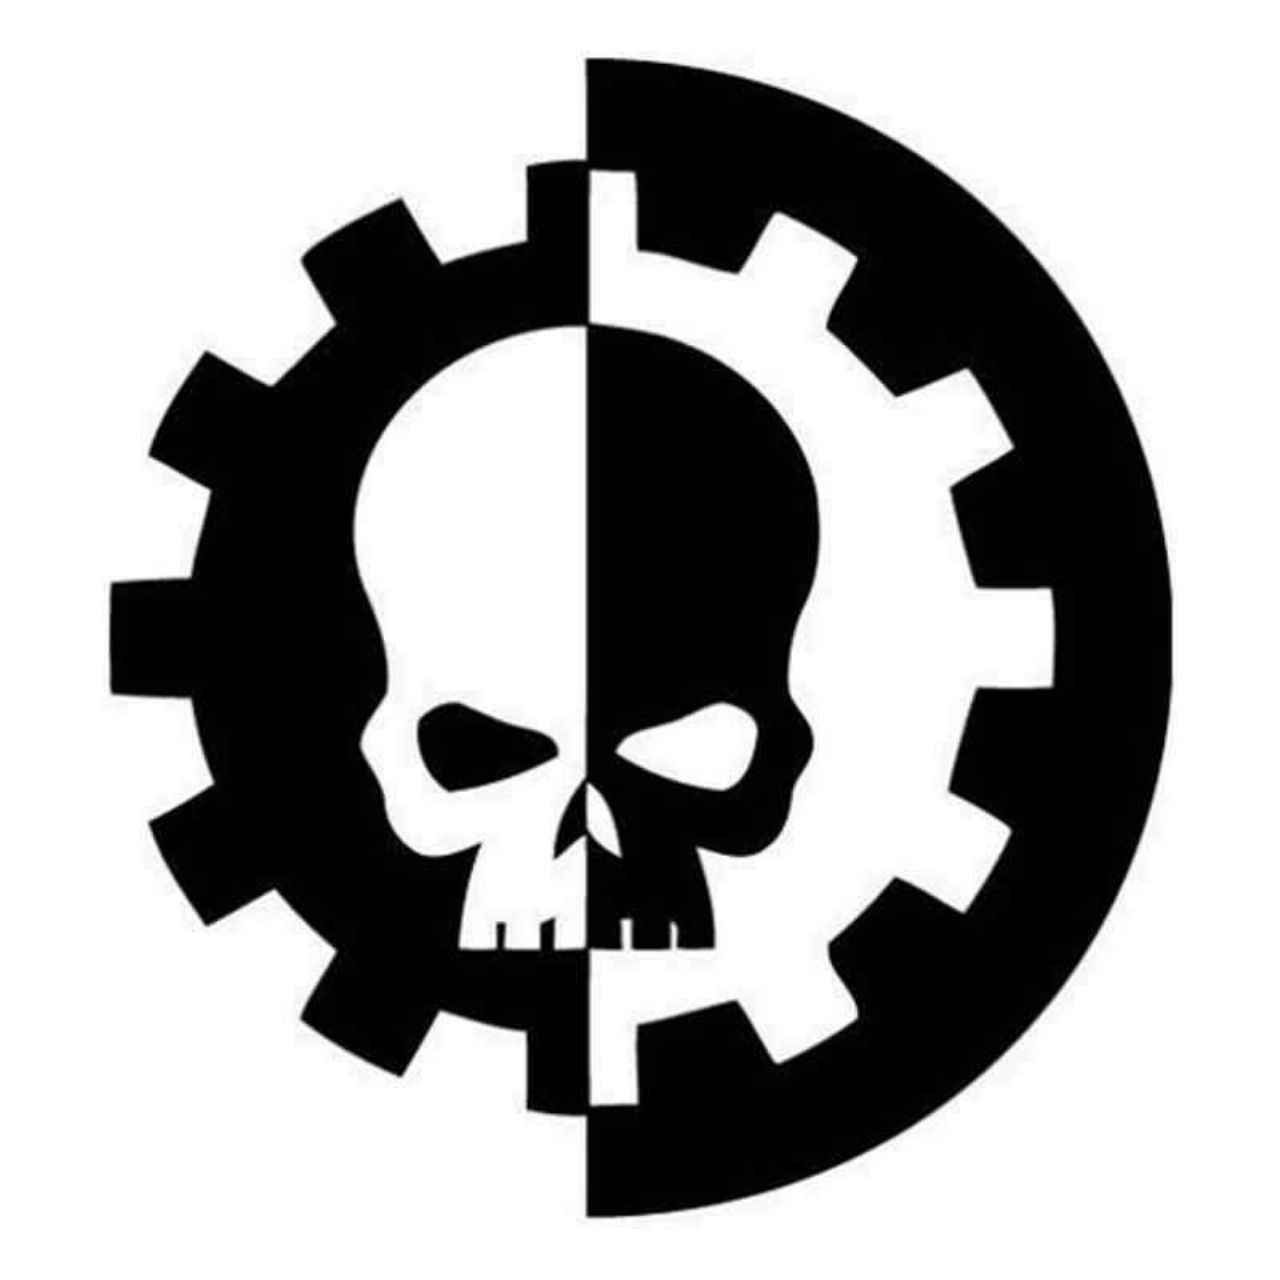 Warhammer 40k adeptus mechanicus 056 decal sticker ballzbeatz com